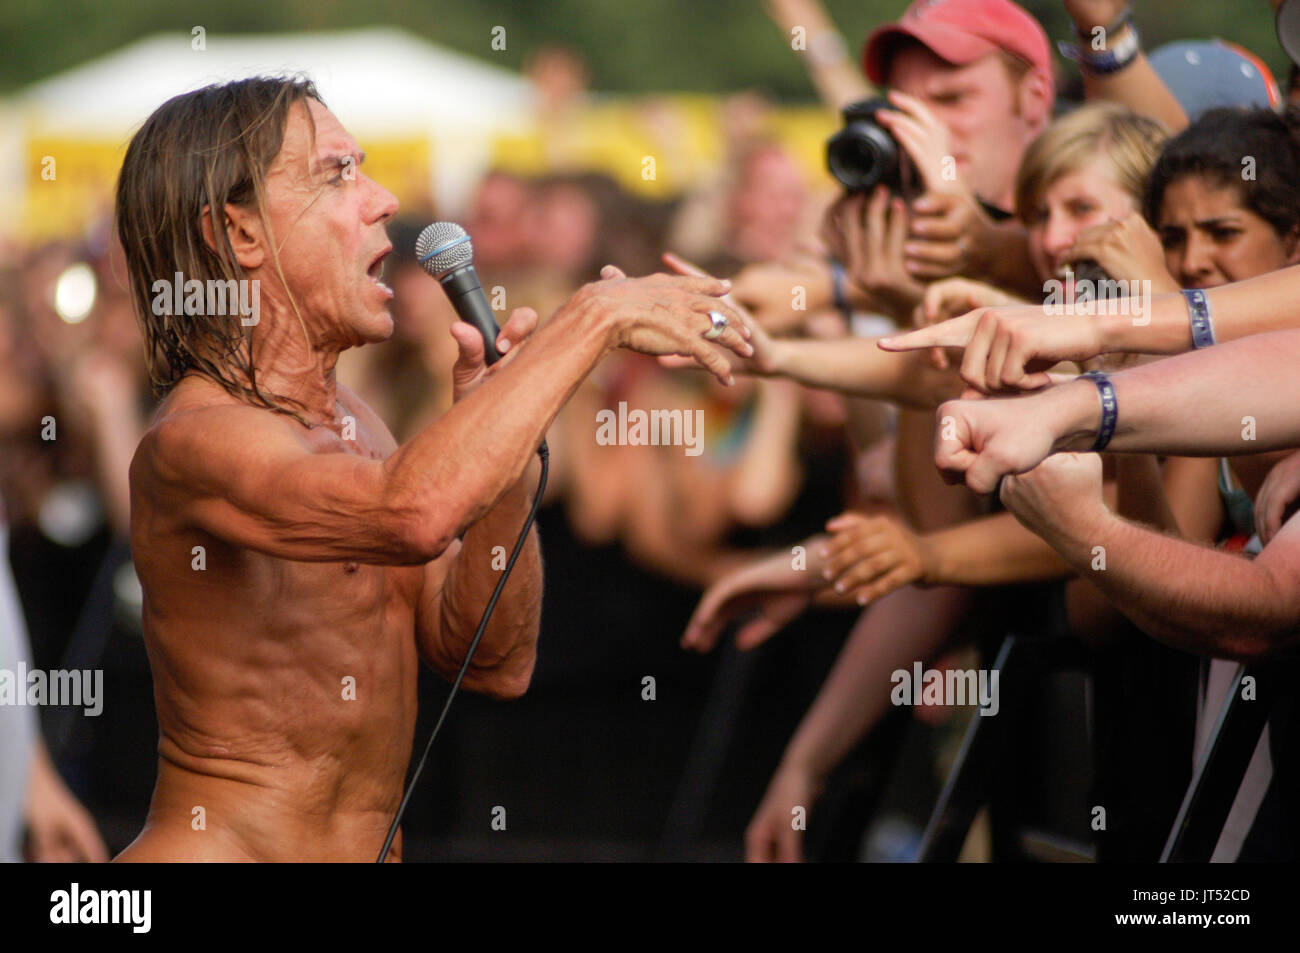 Iggy Pop Iggy Stooges performs 2007 Lollapalooza Chicago,Il - Stock Image